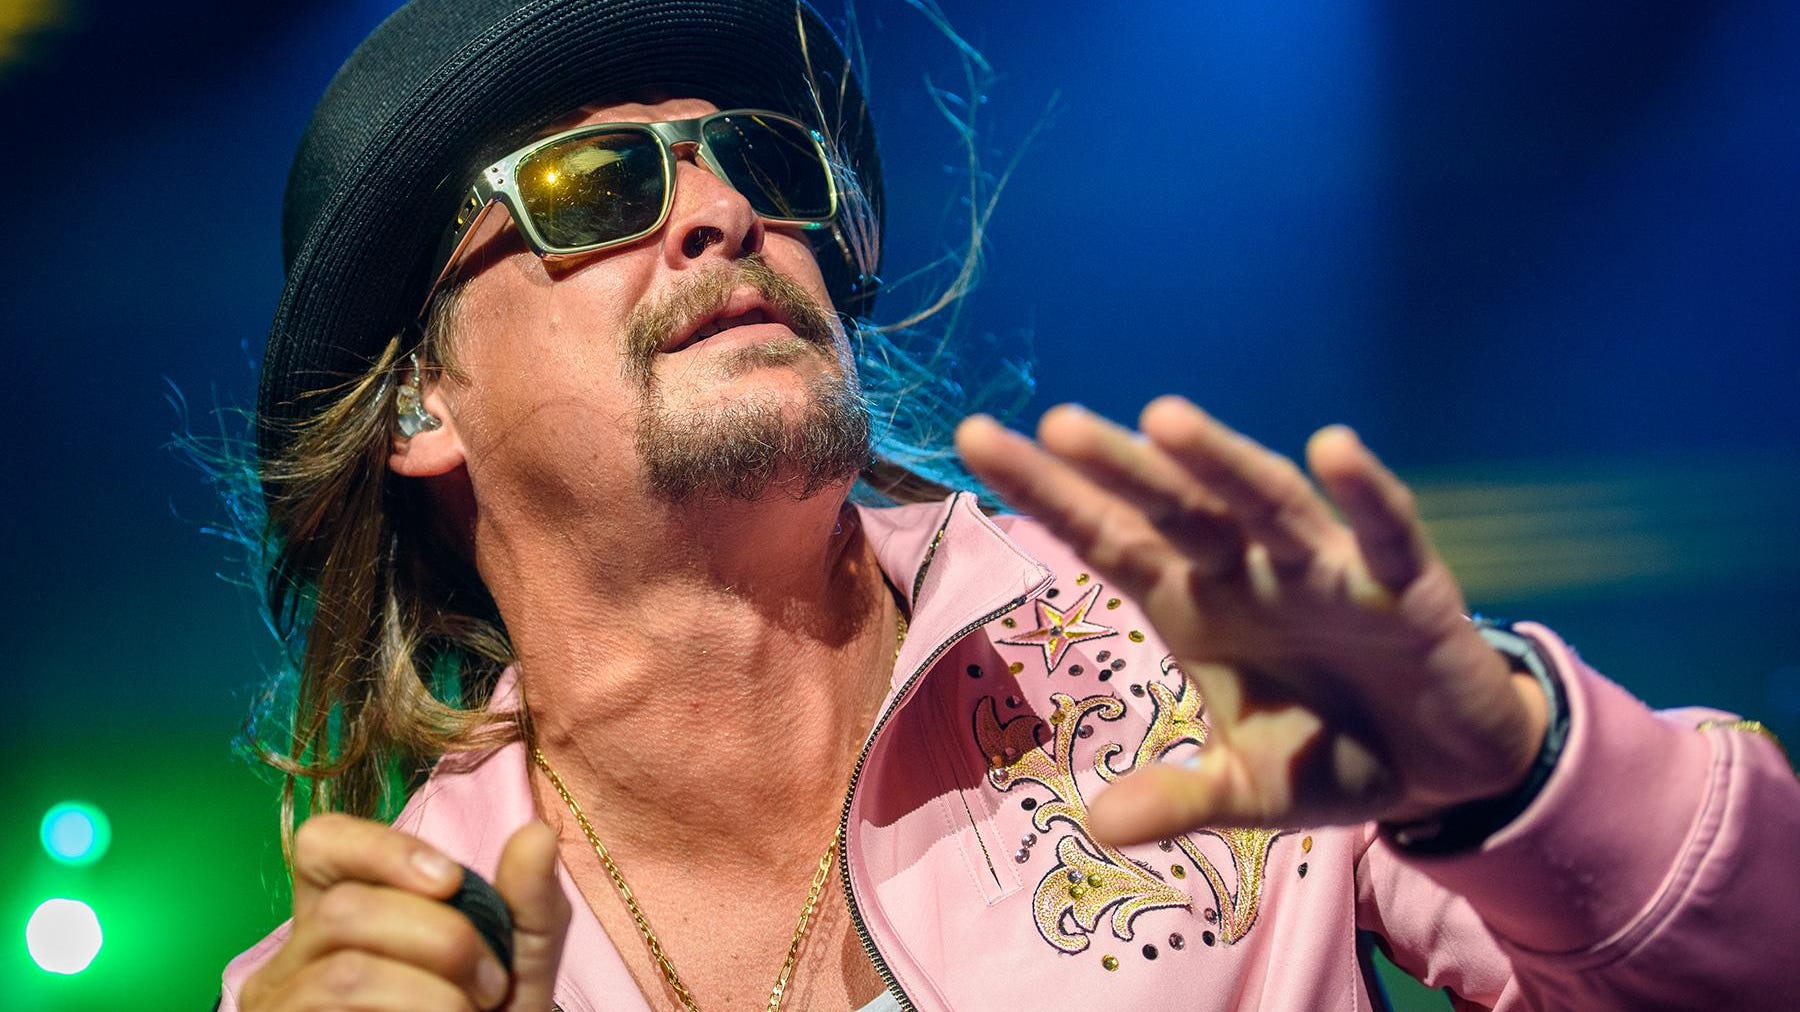 Kid Rock tribute: Rock shares 'Rock Steady' memory